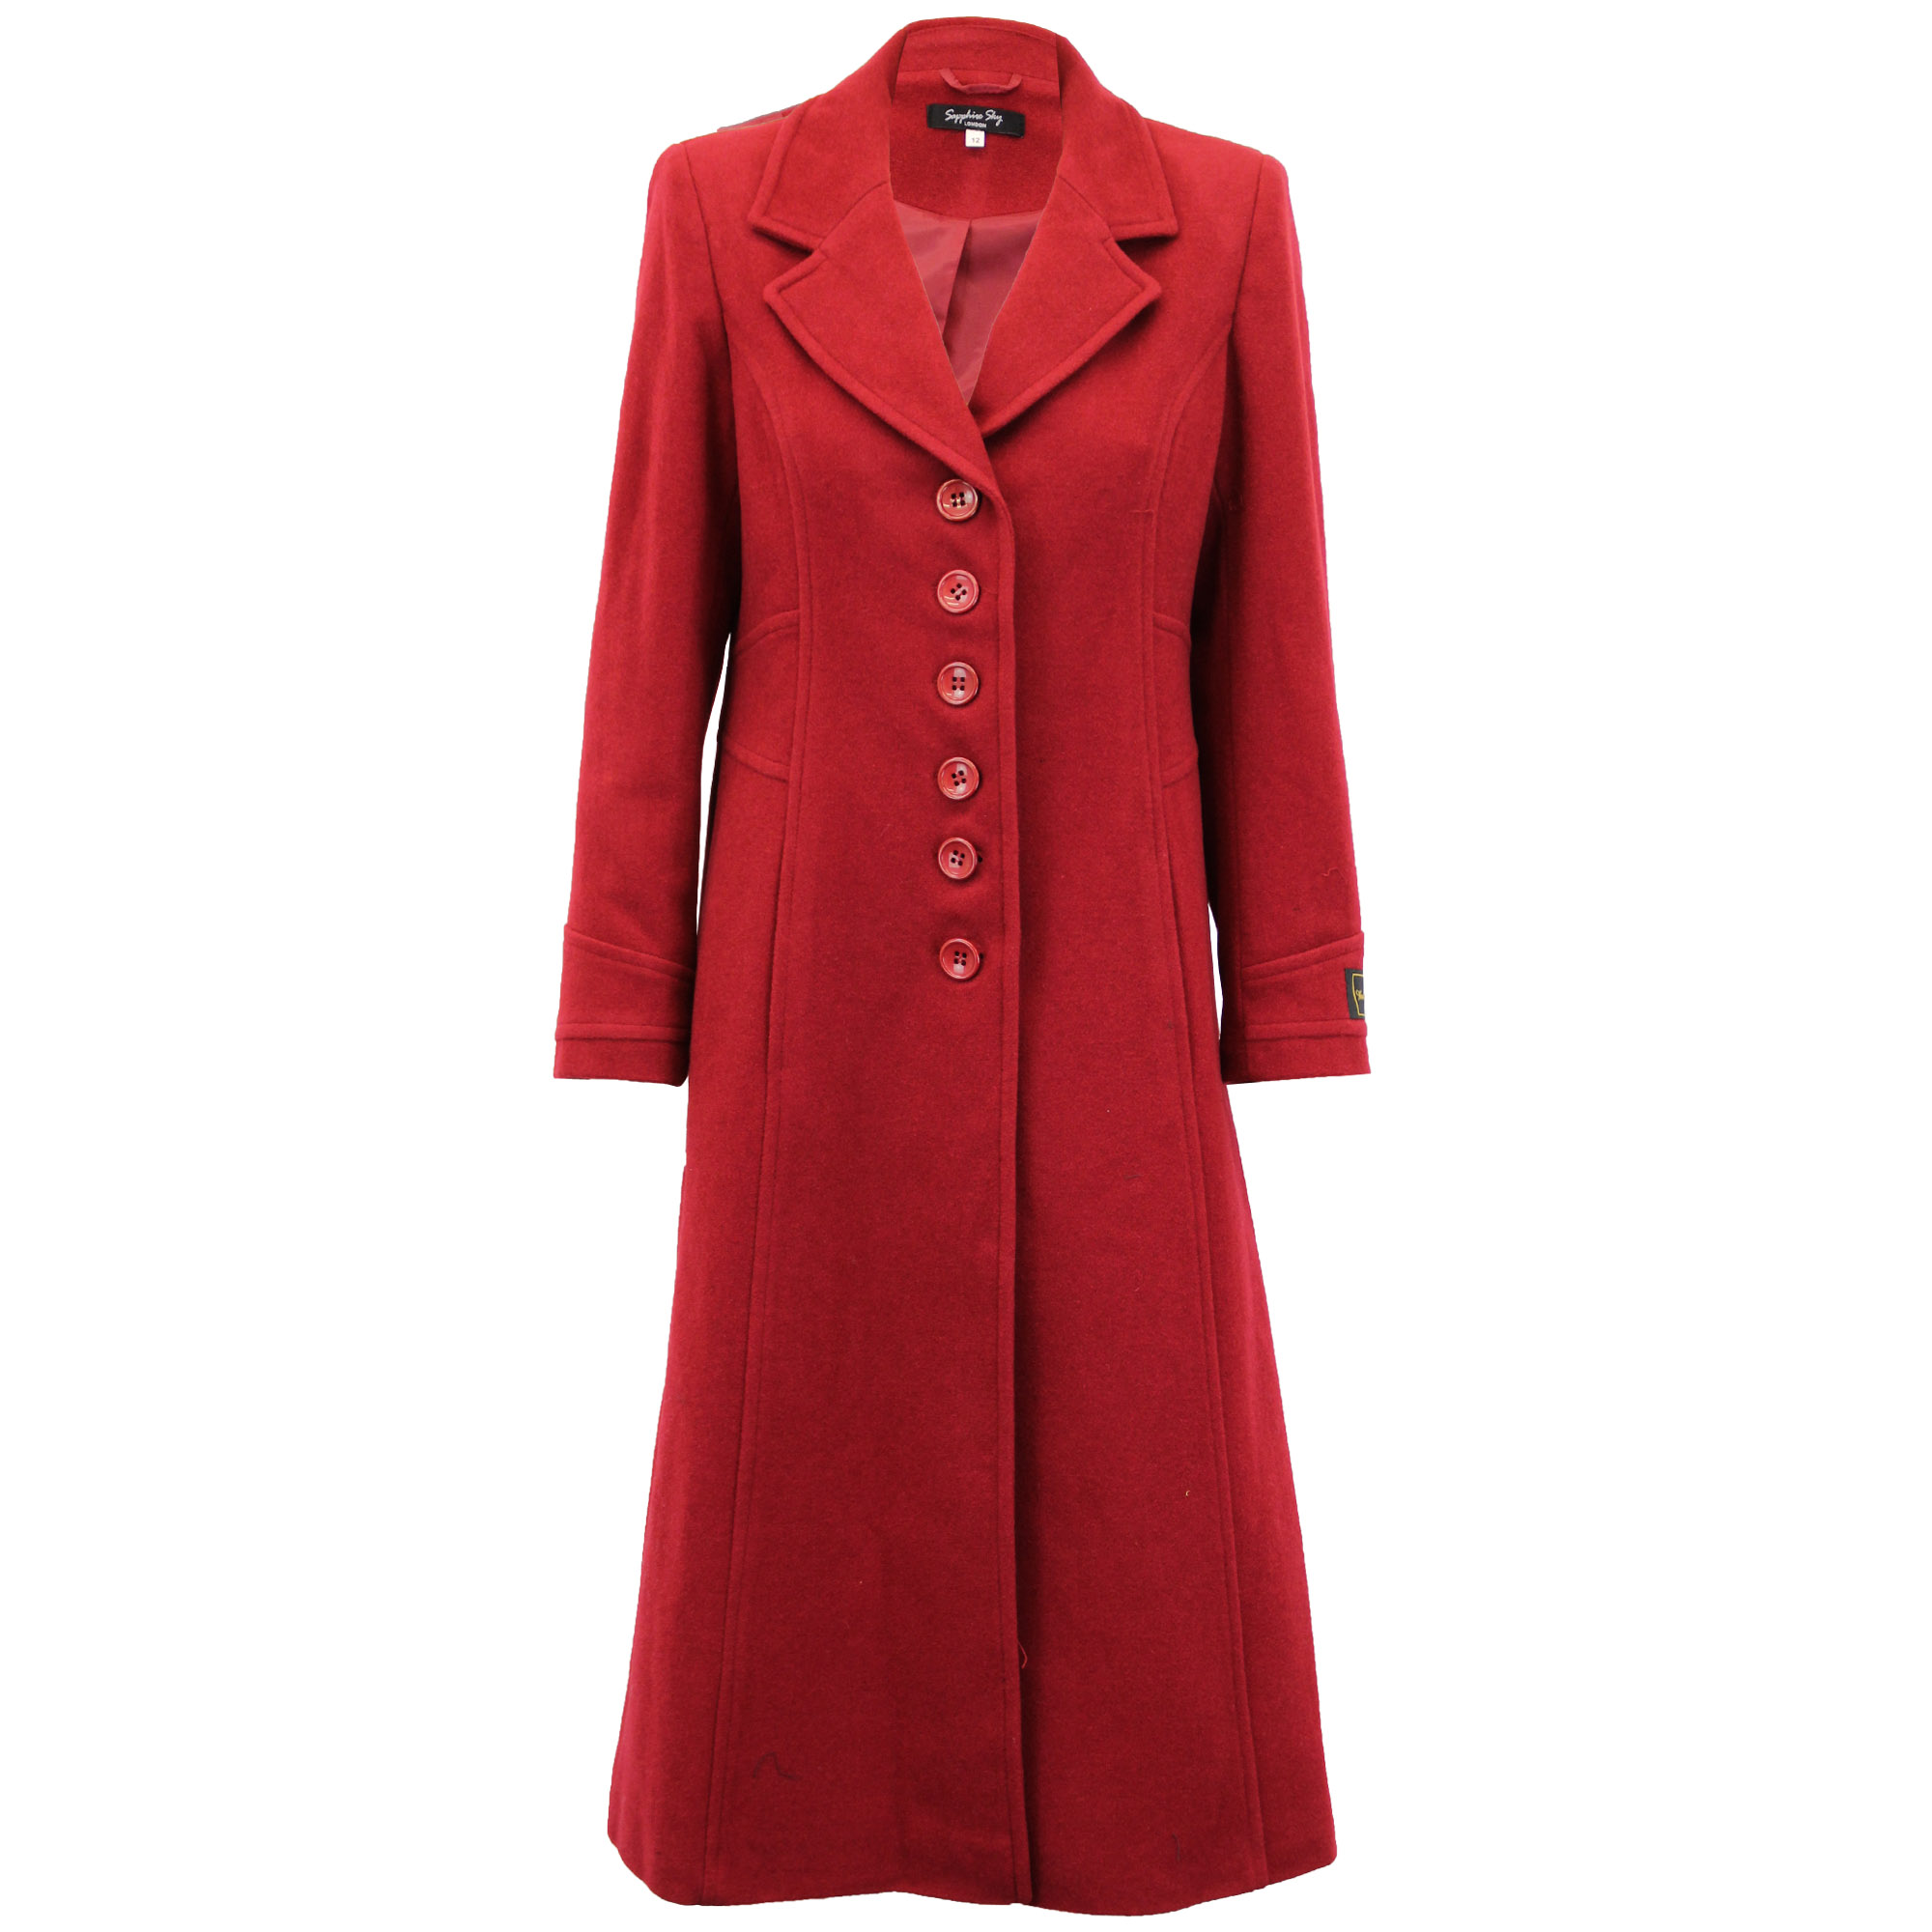 Womens winter coats and jackets